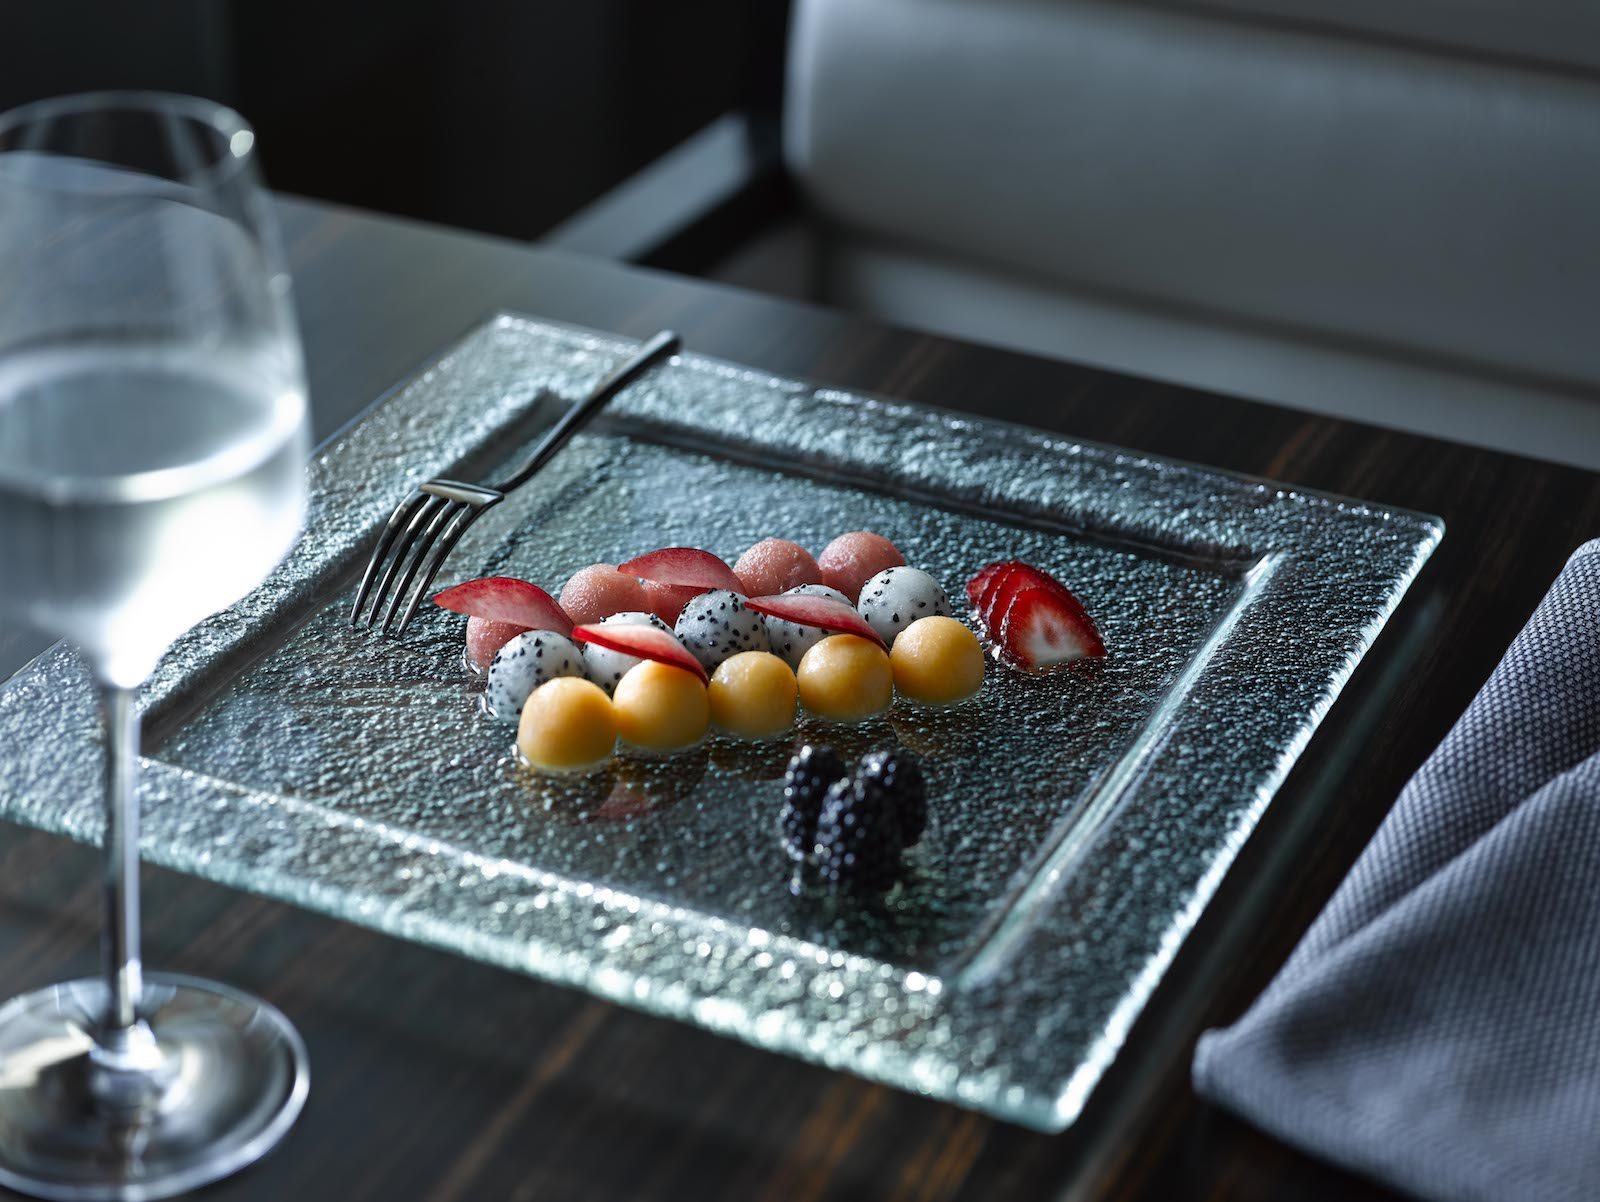 dusit-thani-abu-dhabi_dining_capital-grill_food_fruits